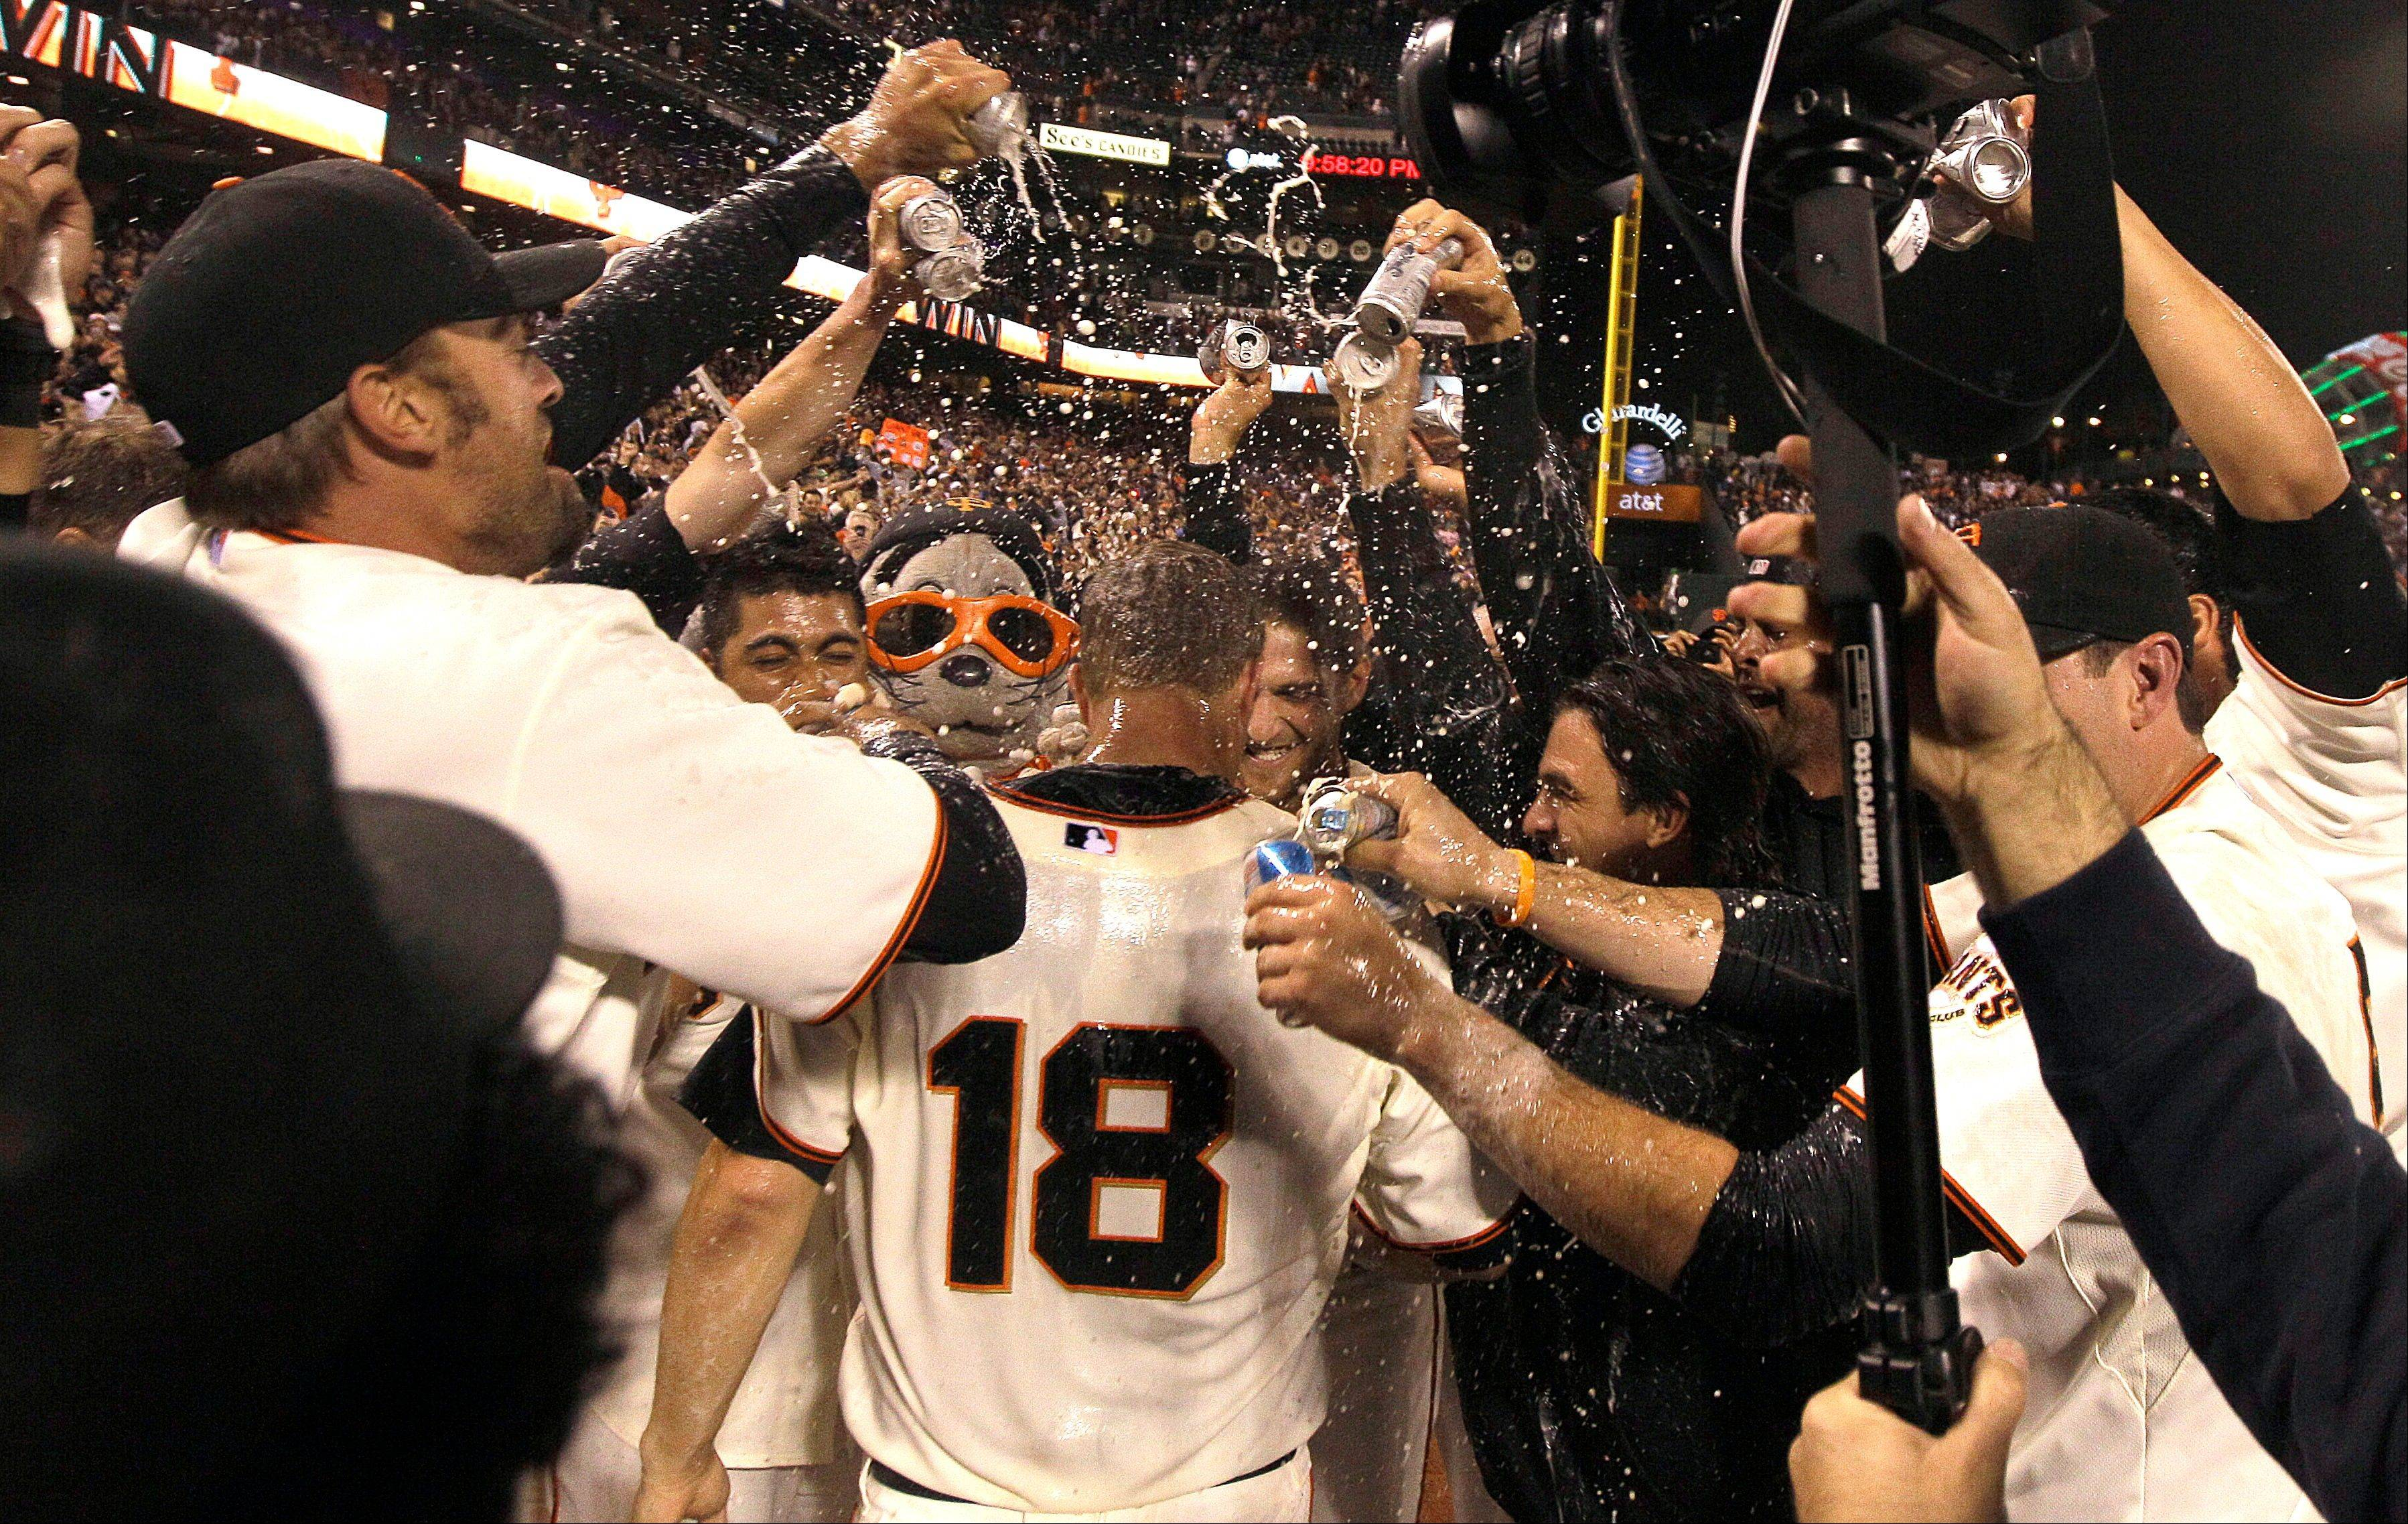 San Francisco Giants pitcher Matt Cain (18) celebrates with teammates Wednesday after throwing a perfect game.